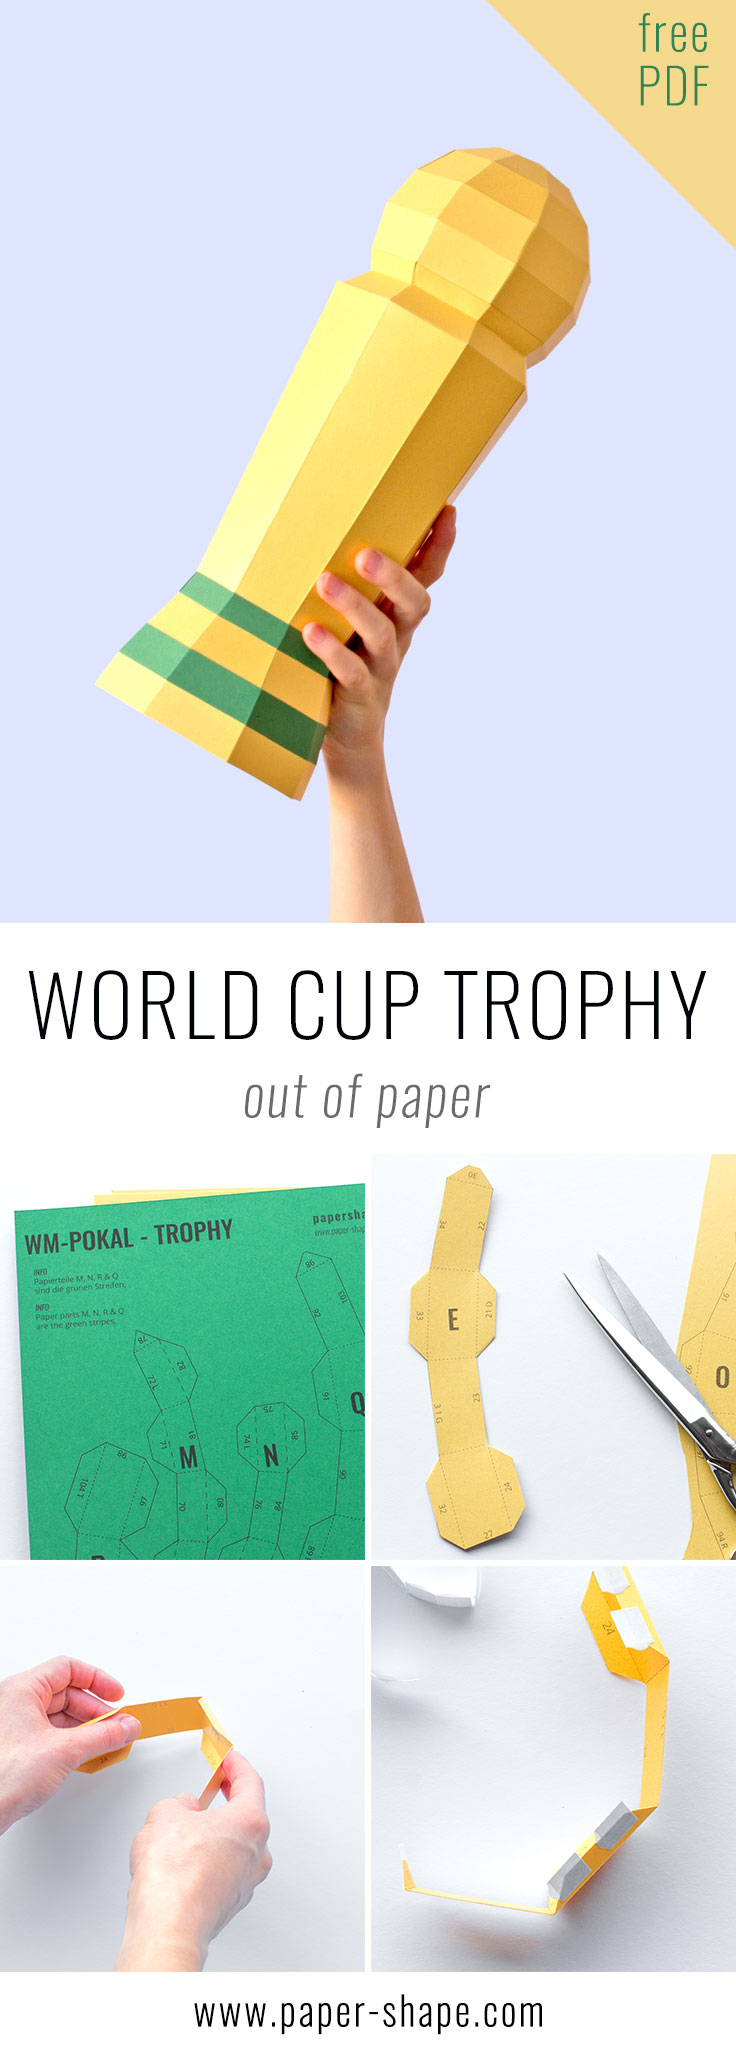 Funny World Cup Party Idea DIY Trophy Out Of Paper Free Printable